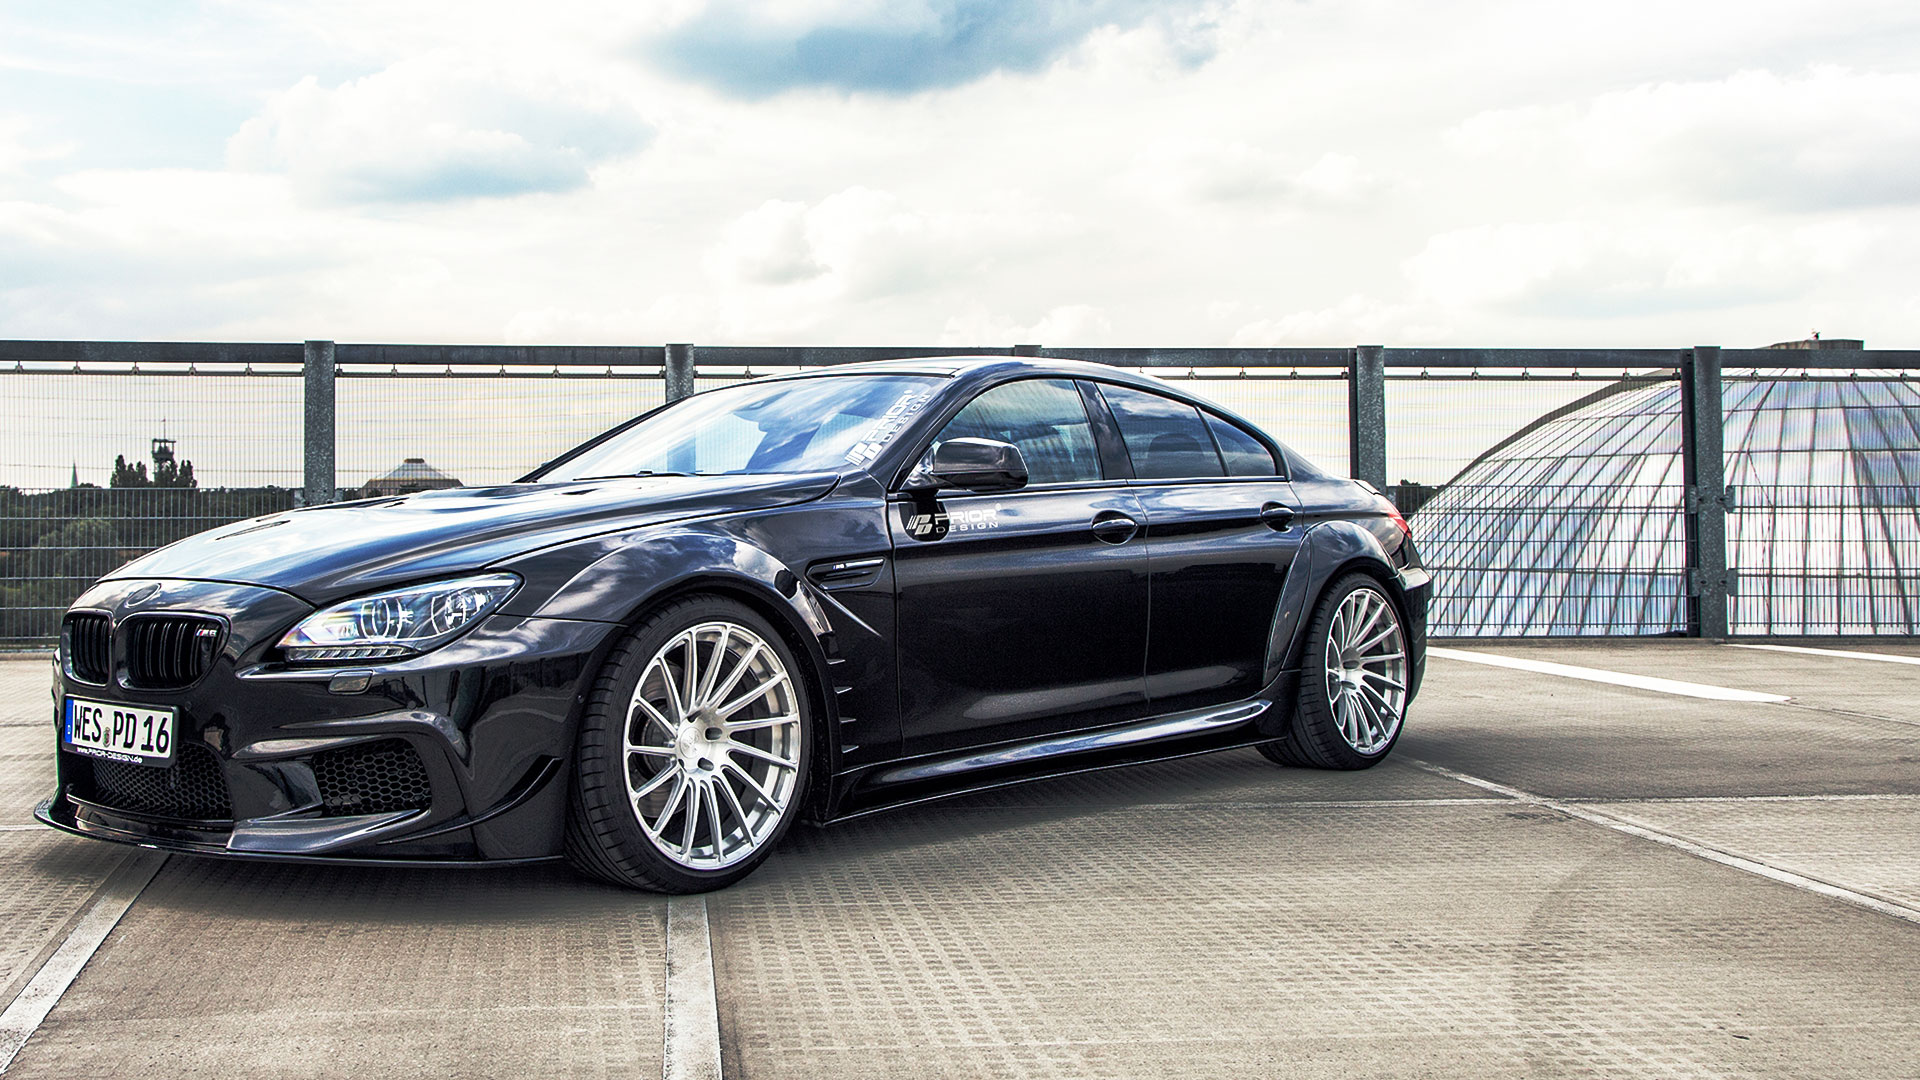 Bmw F06 M6 6 Series Gran Coupe Tuning Pd6xx Wide Body Aerodynamic Kit M D Exclusive Cardesign